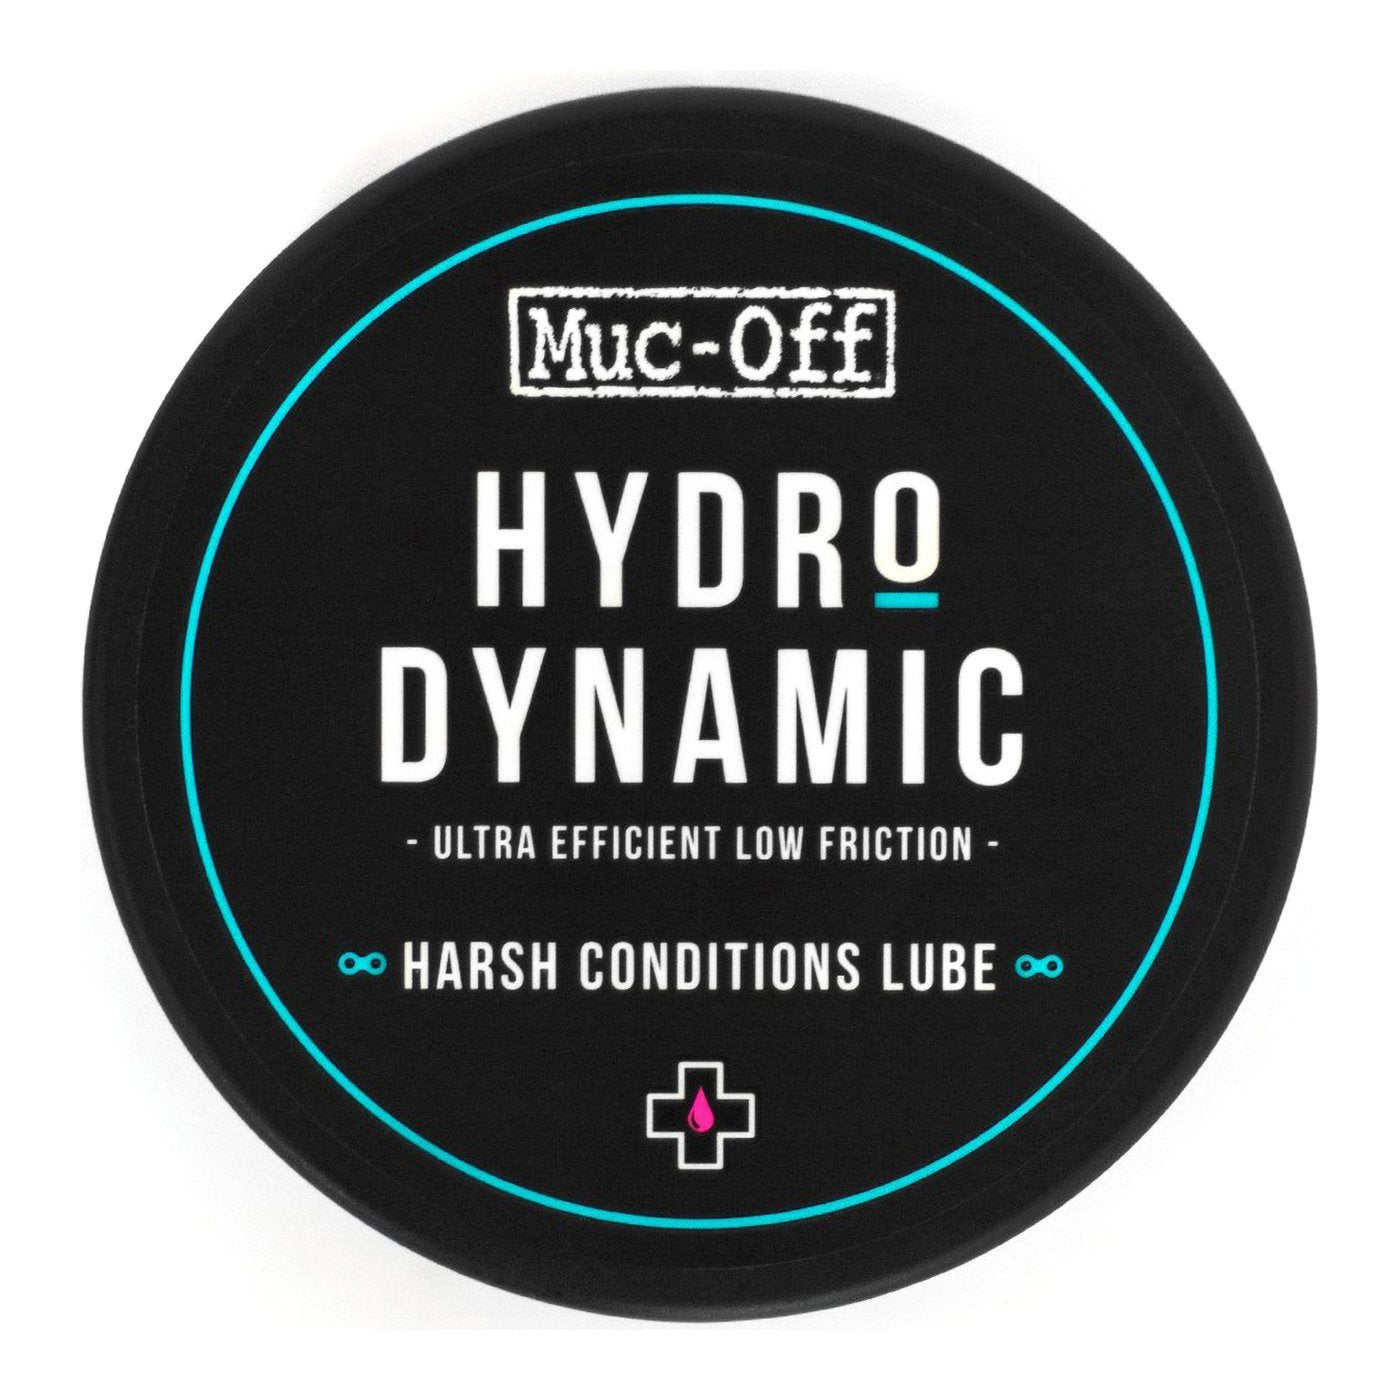 Close up of Hydrodynamic Harsh Conditions Lube